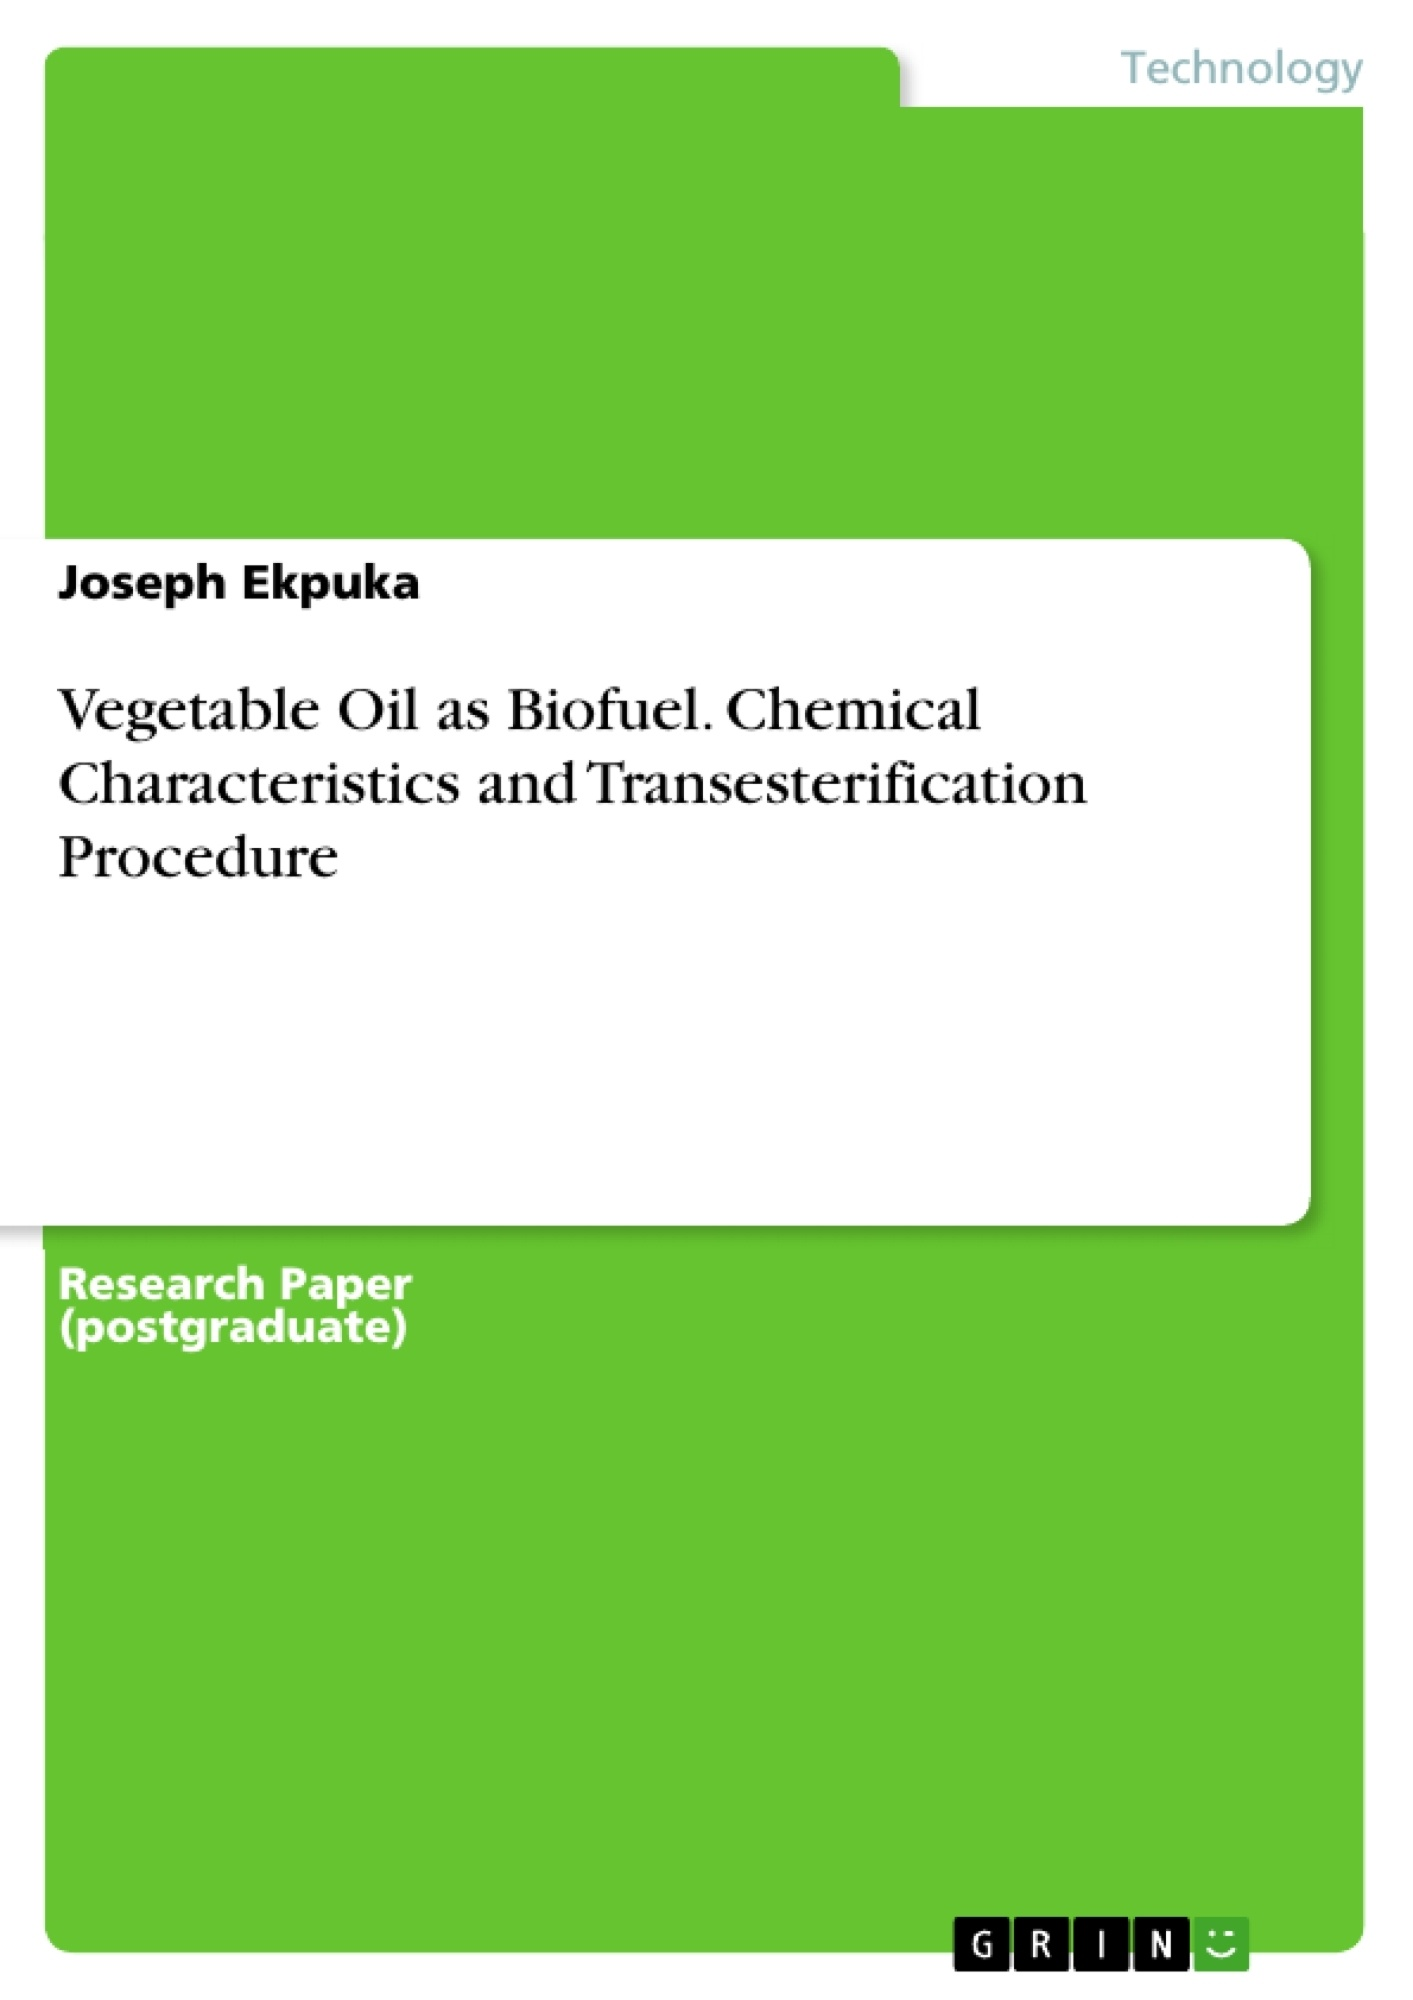 Title: Vegetable Oil as Biofuel. Chemical Characteristics and Transesterification Procedure